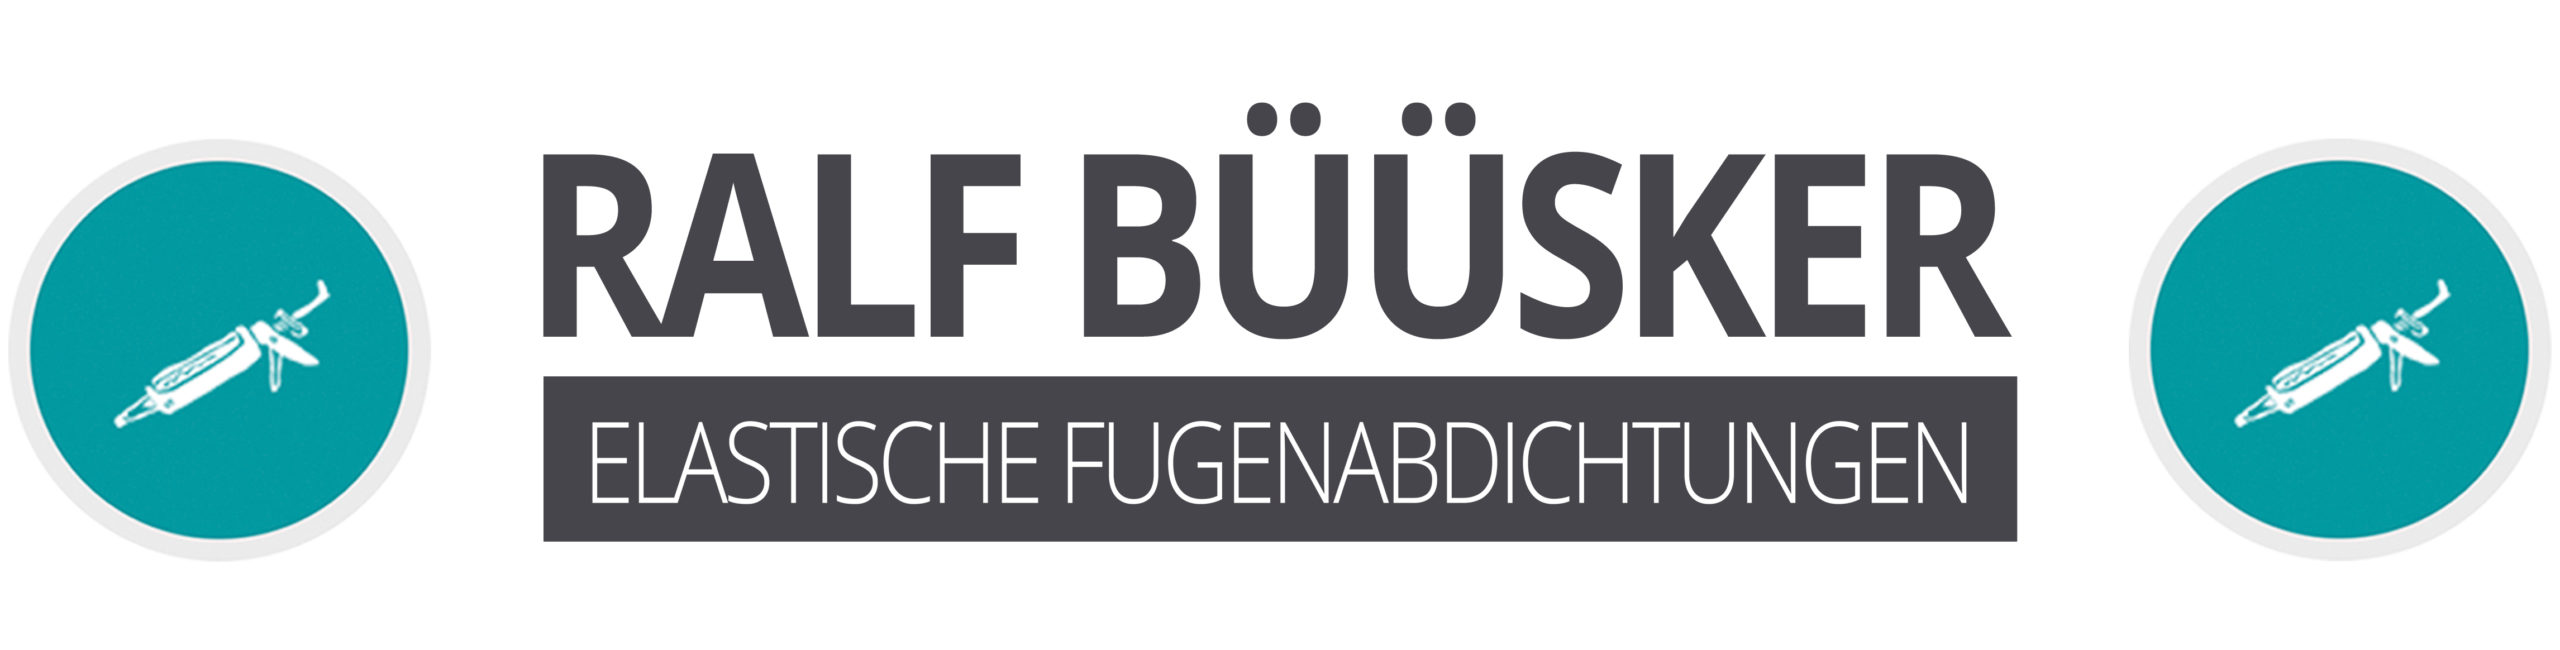 https://vfb-oldenburg.de/wp-content/uploads/Logo2_Büüsker-scaled.jpg